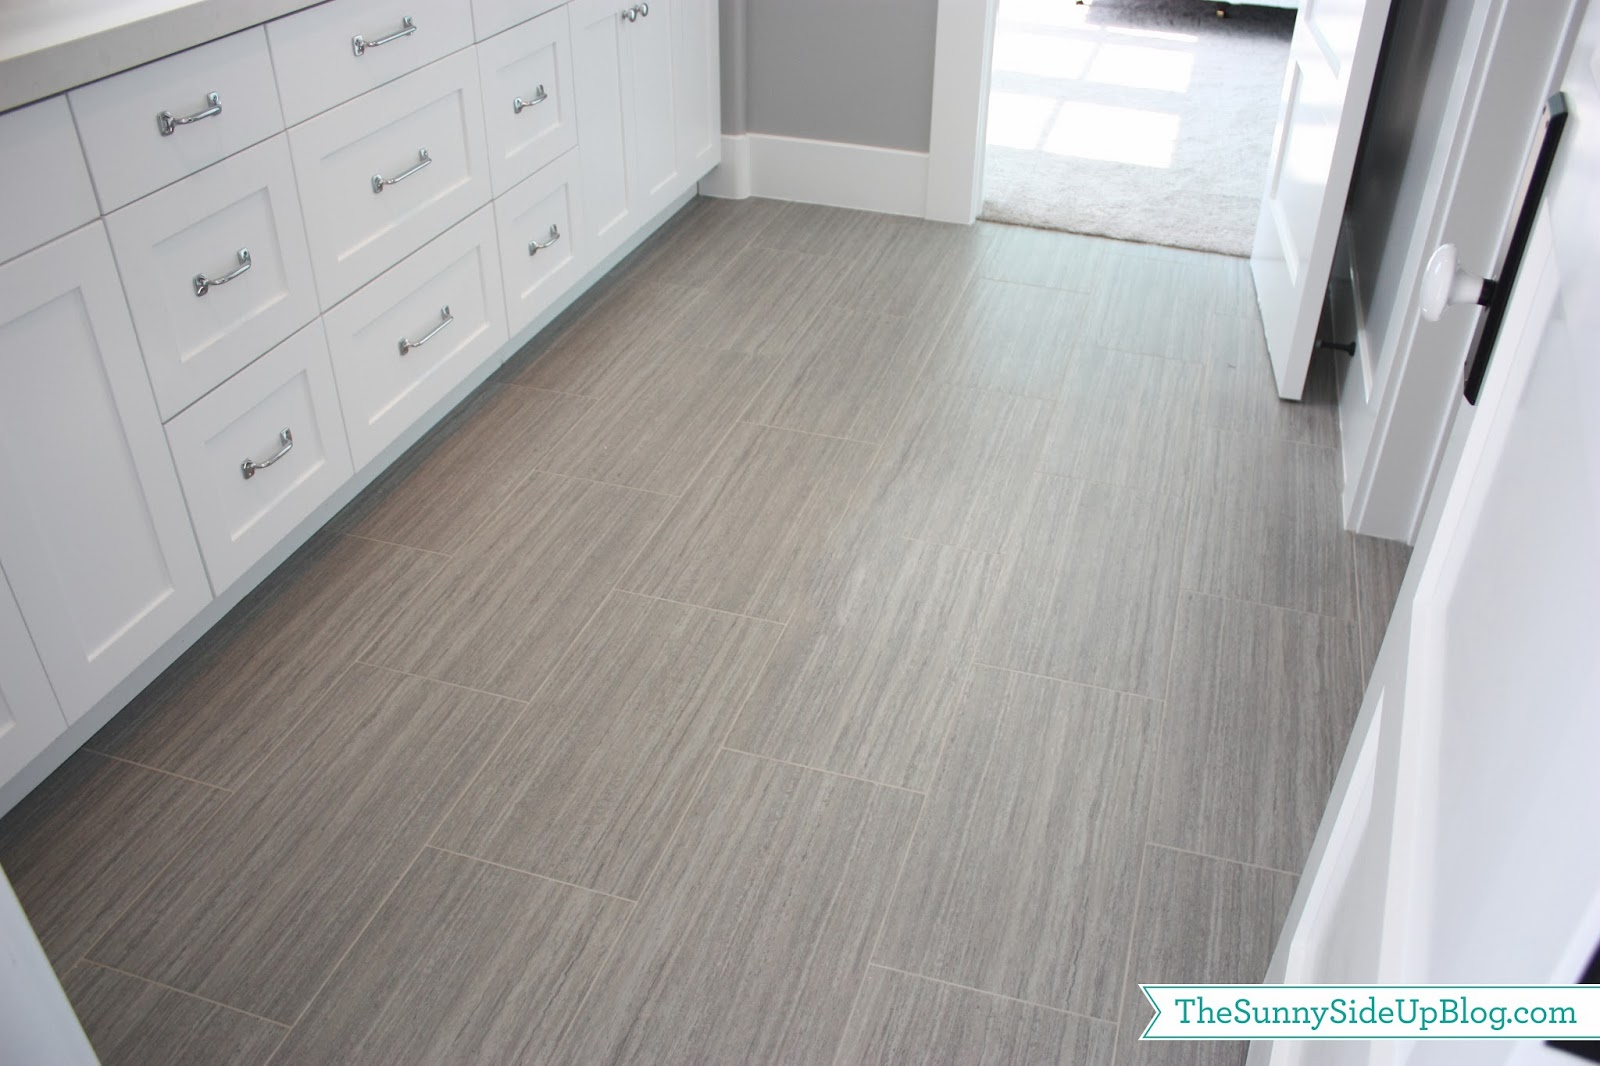 Laundry Room Tile Floor Images Flooring Design Ideas Tiles Gallery